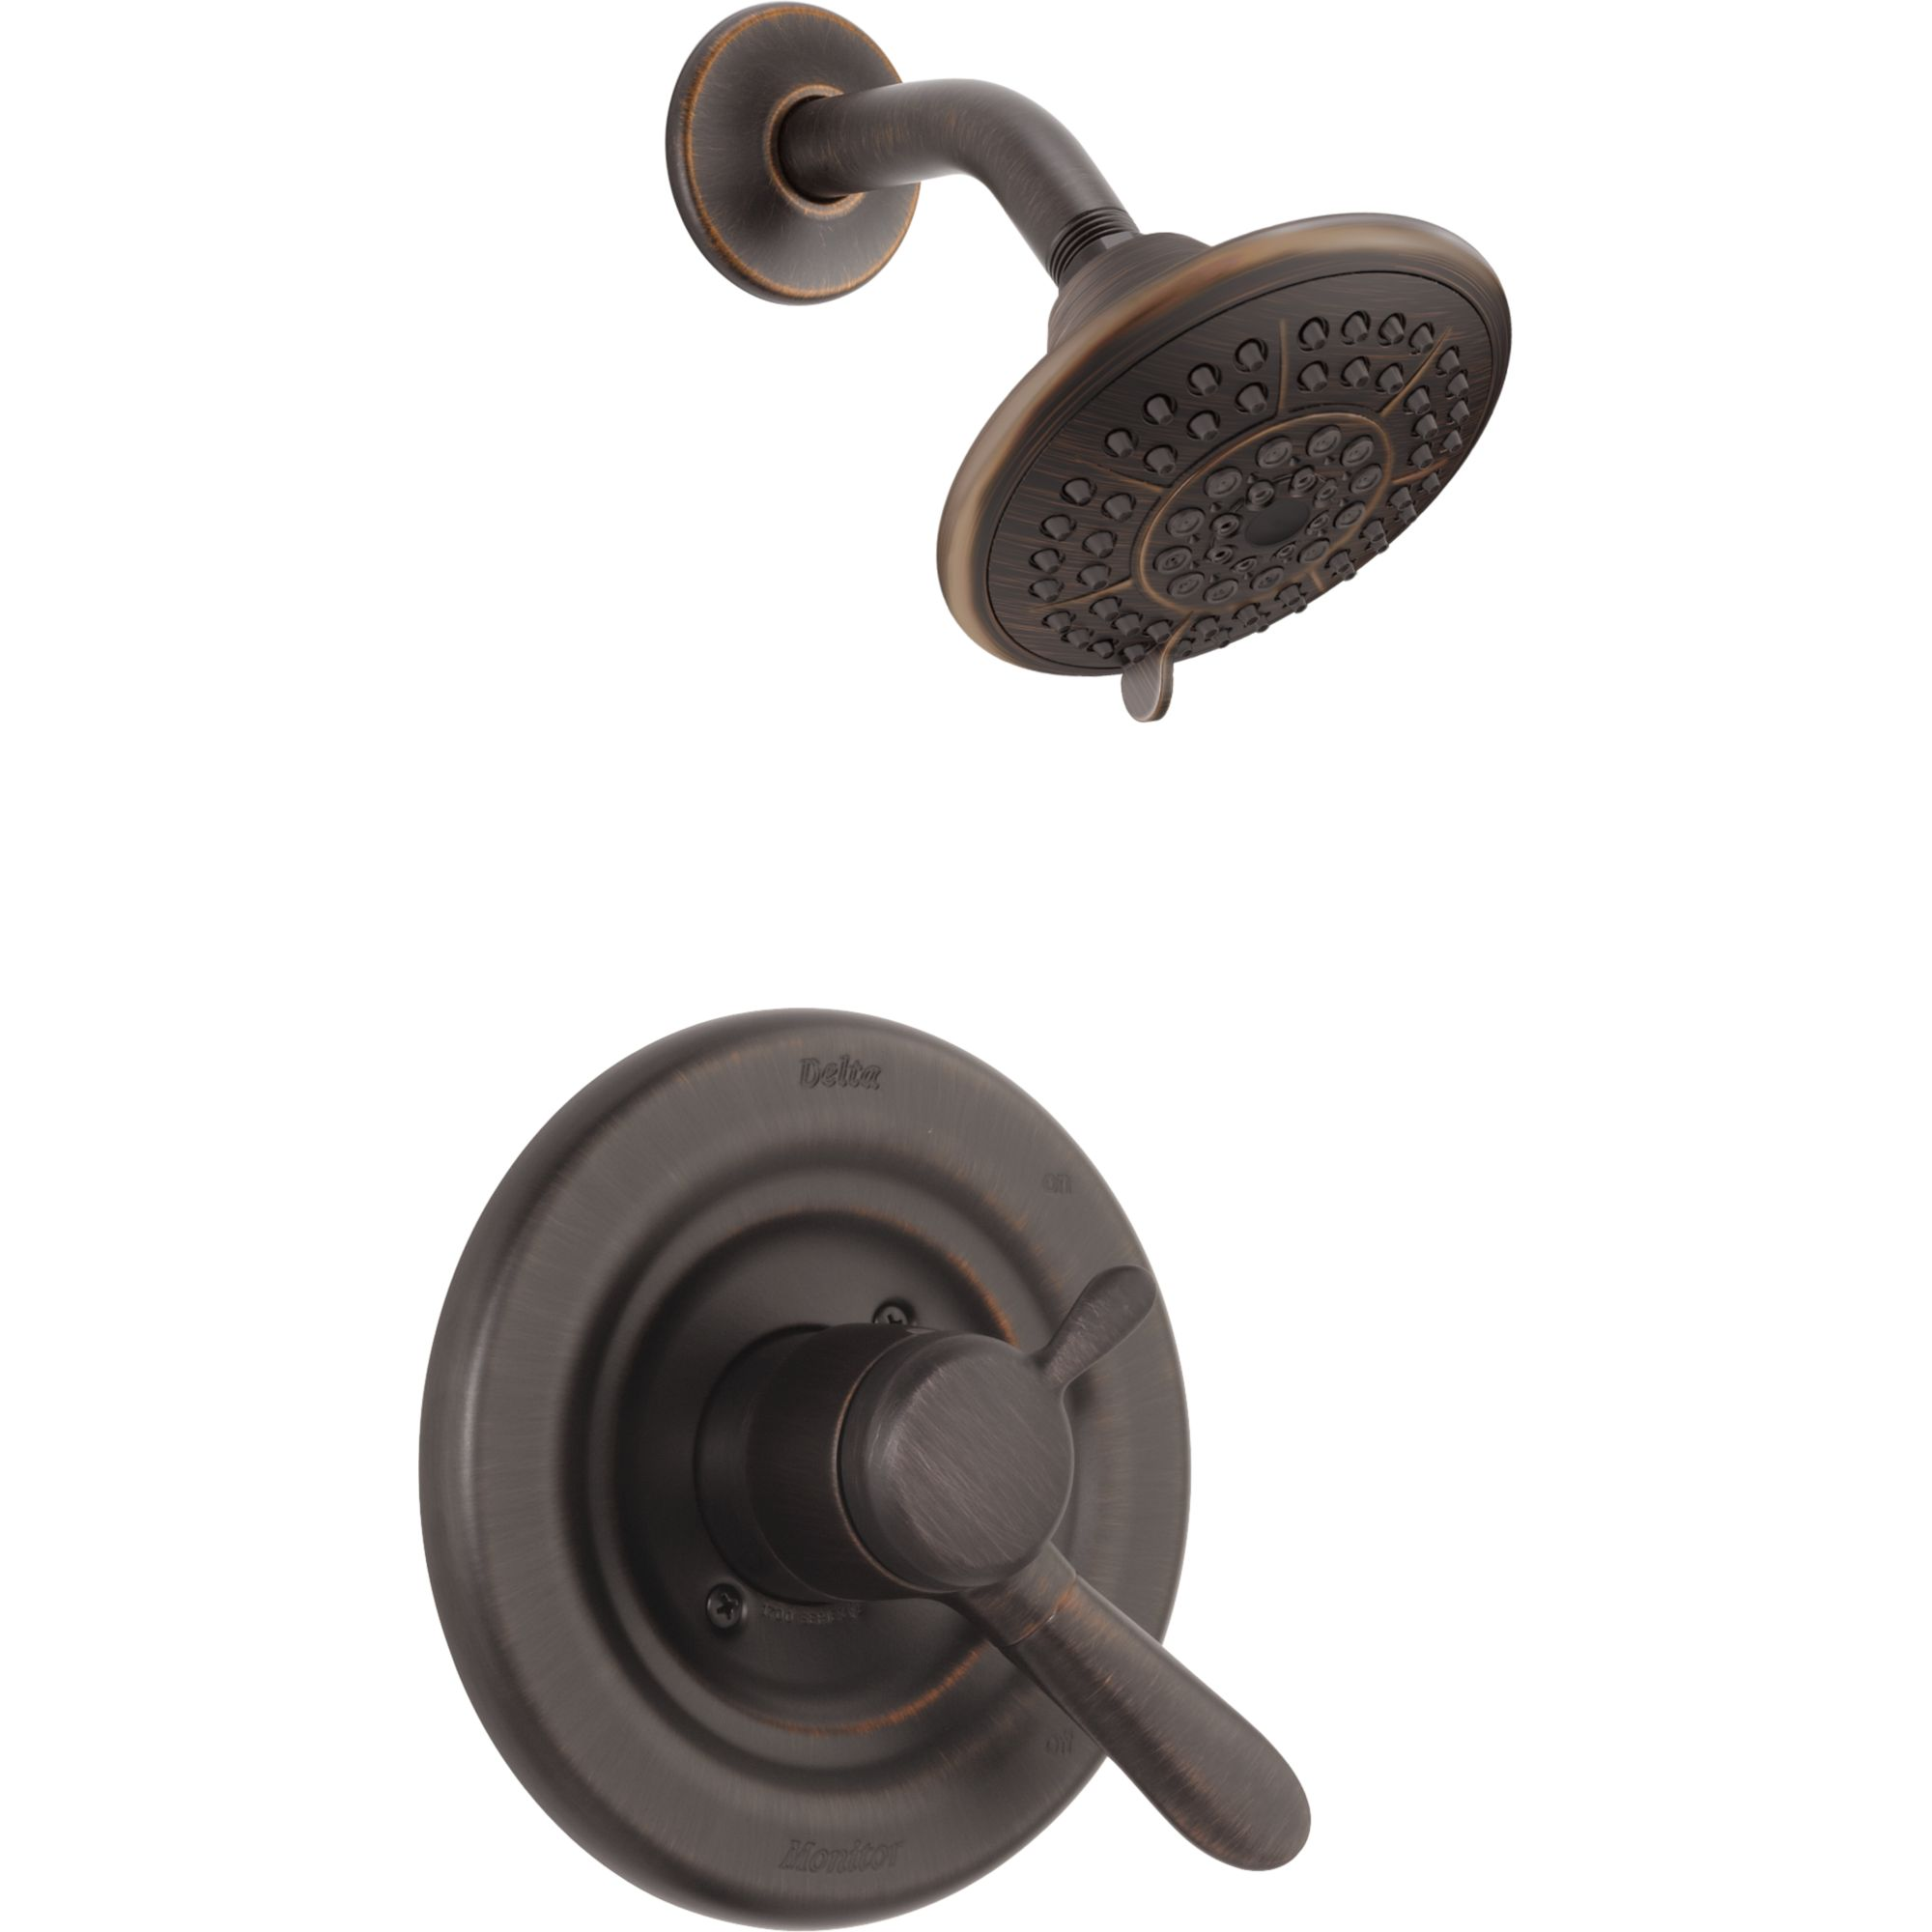 Delta Monitor 13 Series Bath And Shower Faucet With Shower Head Chrome